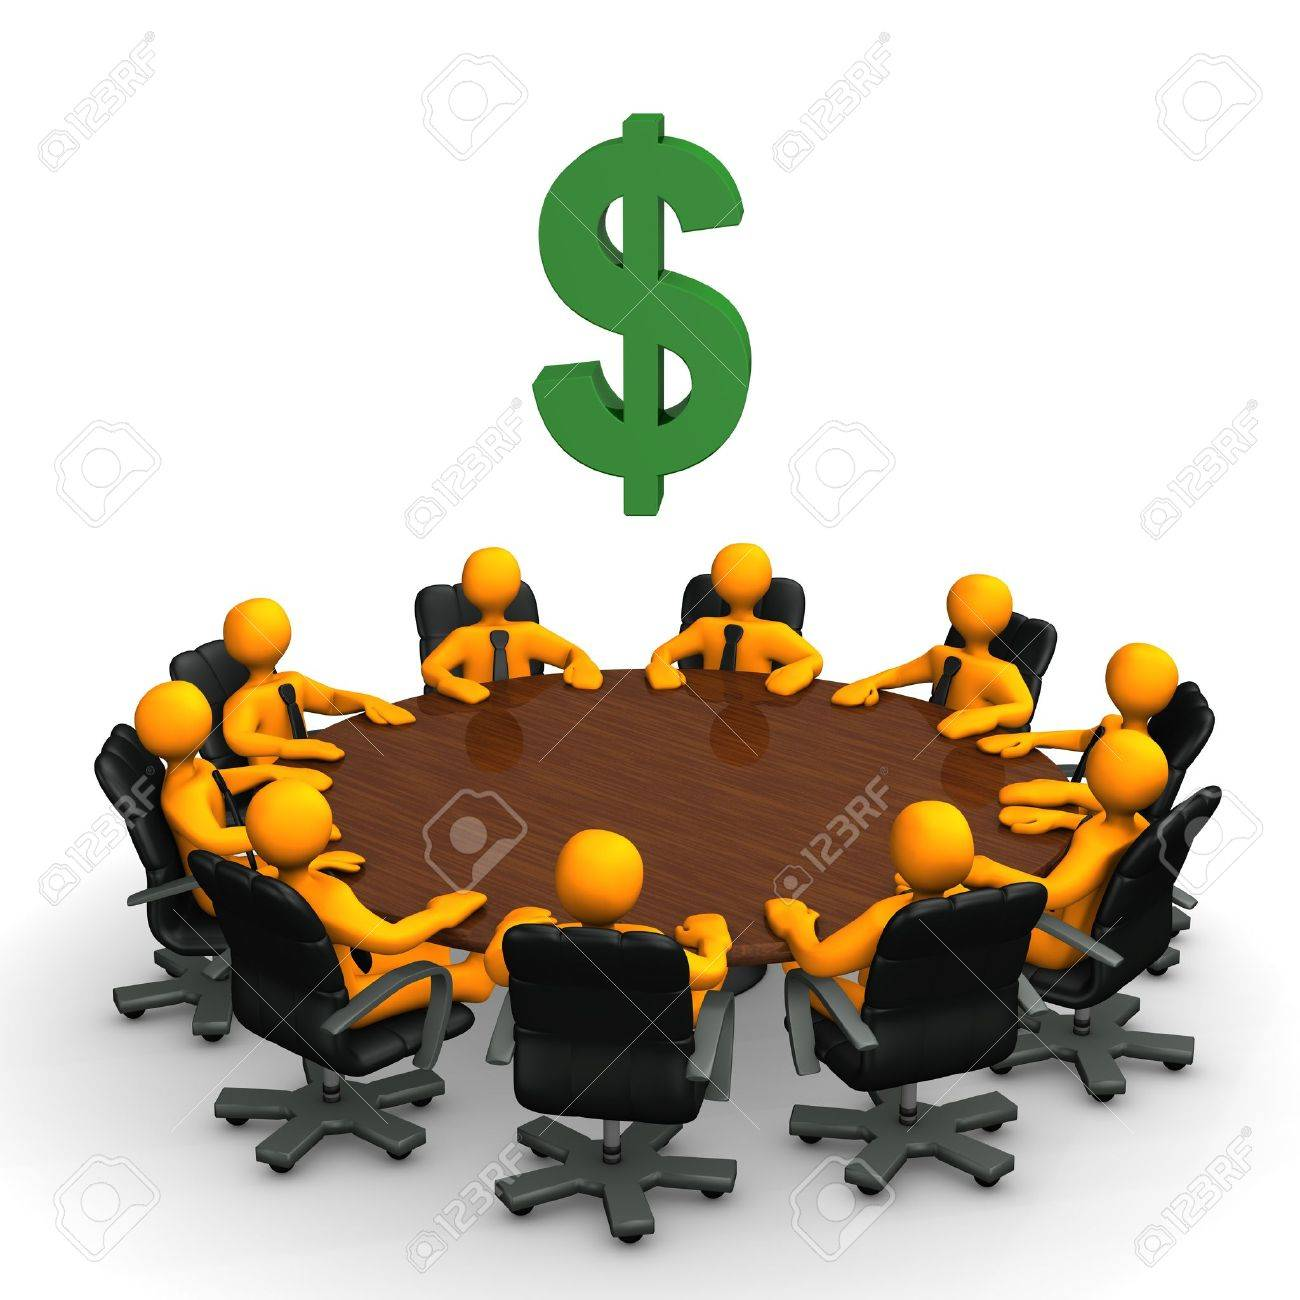 Orange toon characters with dollar currency symbol on the round table. Stock Photo - 12507786